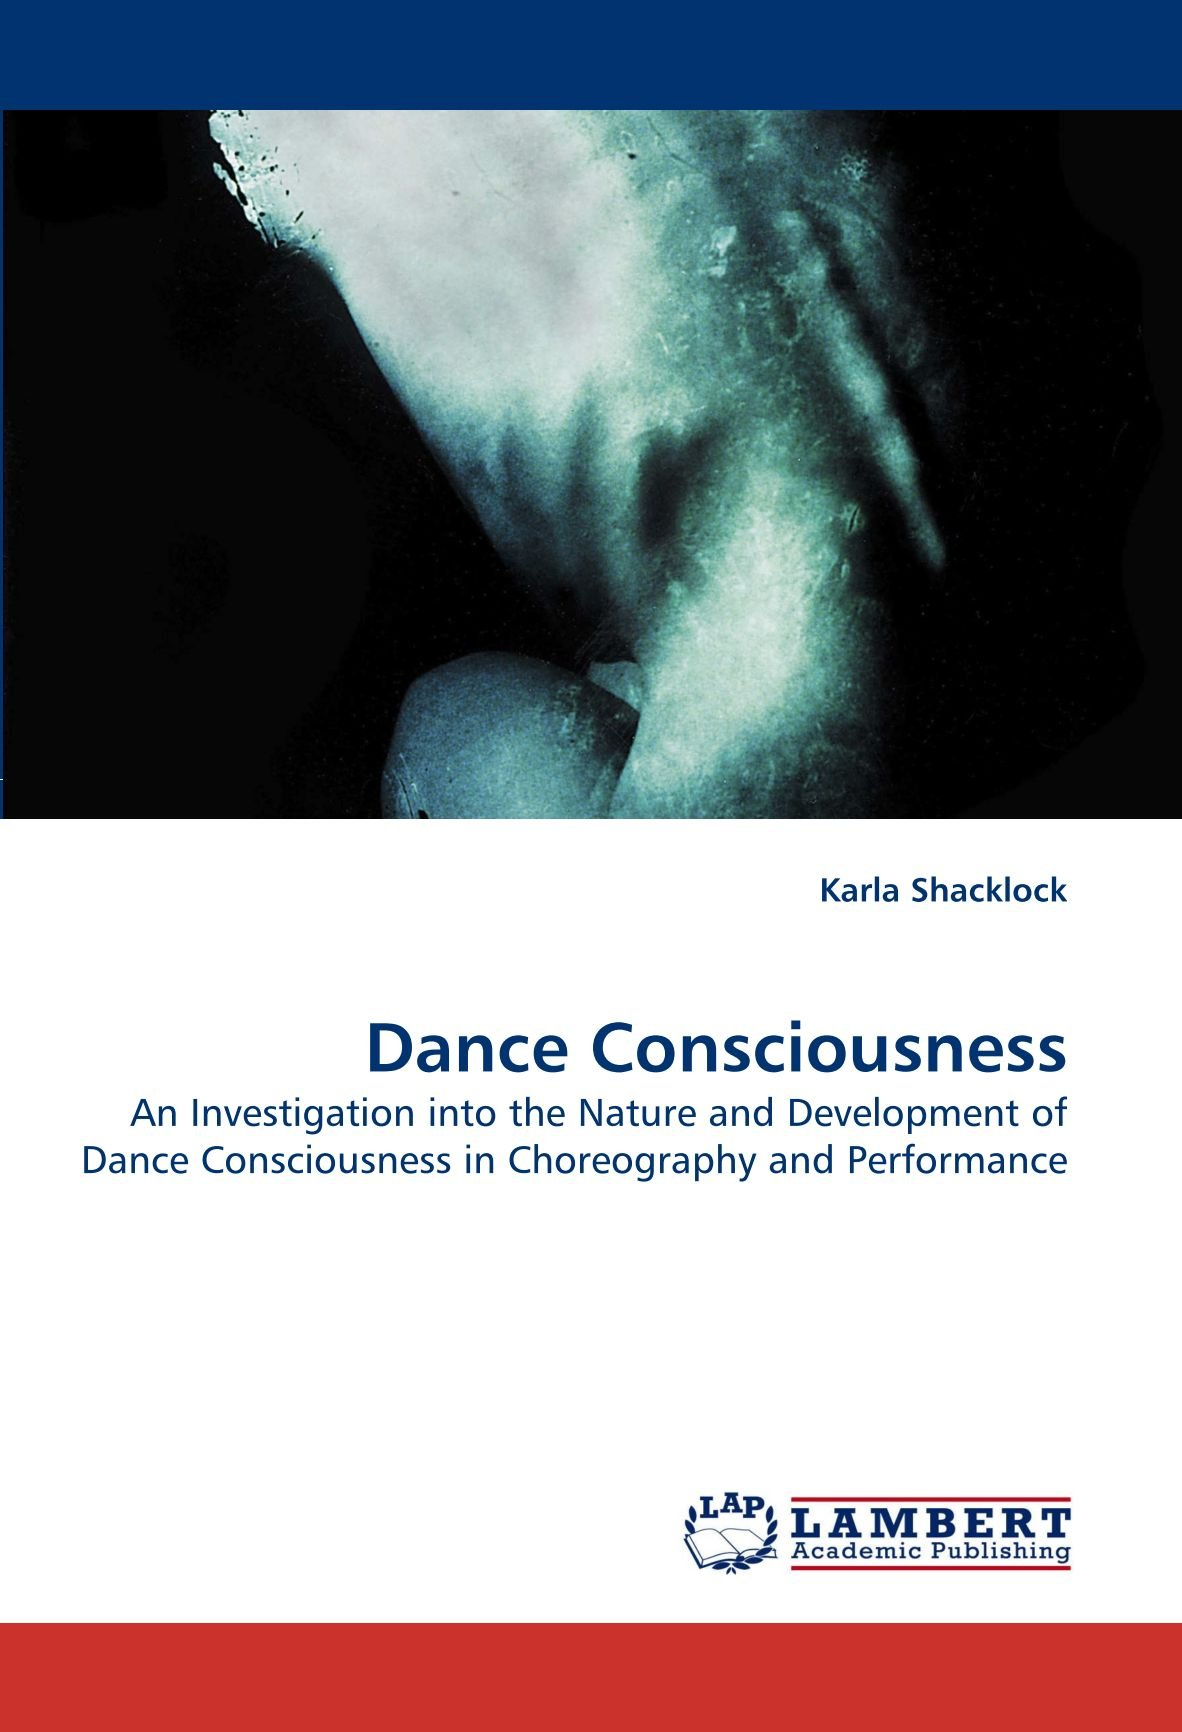 Dance Consciousness: An Investigation into the Nature and Development of Dance Consciousness in Choreography and Performance